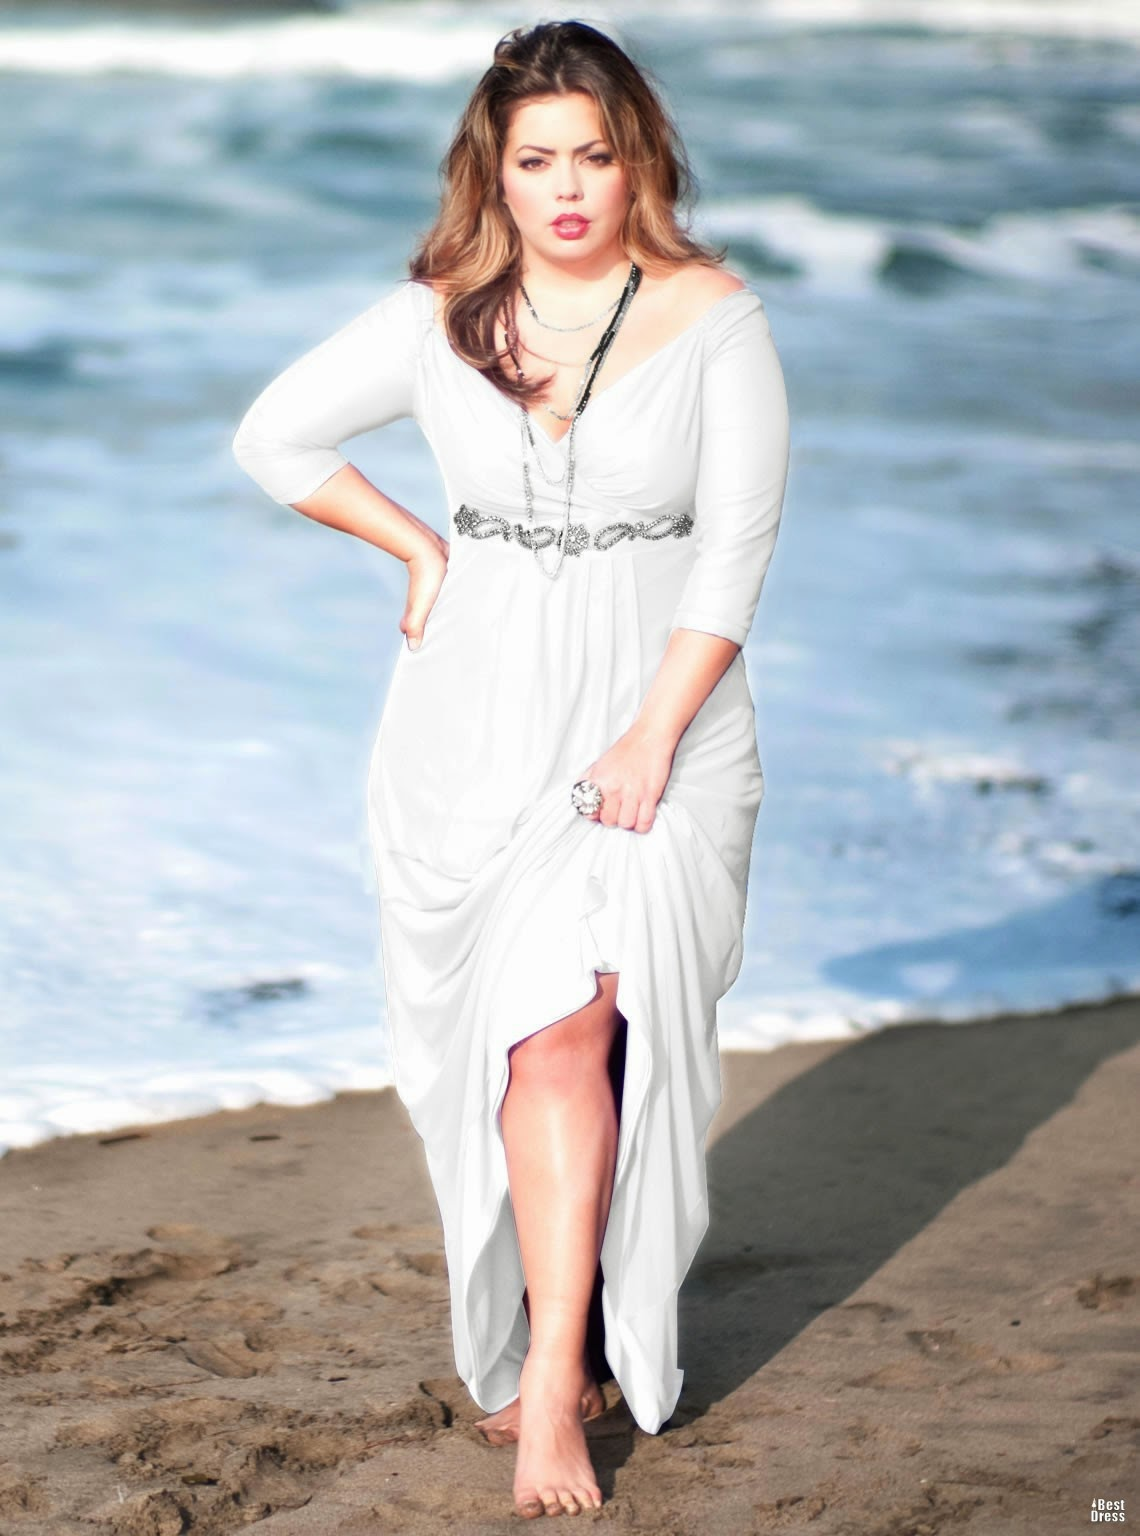 e7cc267cbbb9 Plus Size Dress For Beach Wedding Guest from Peopleforcarlandrews